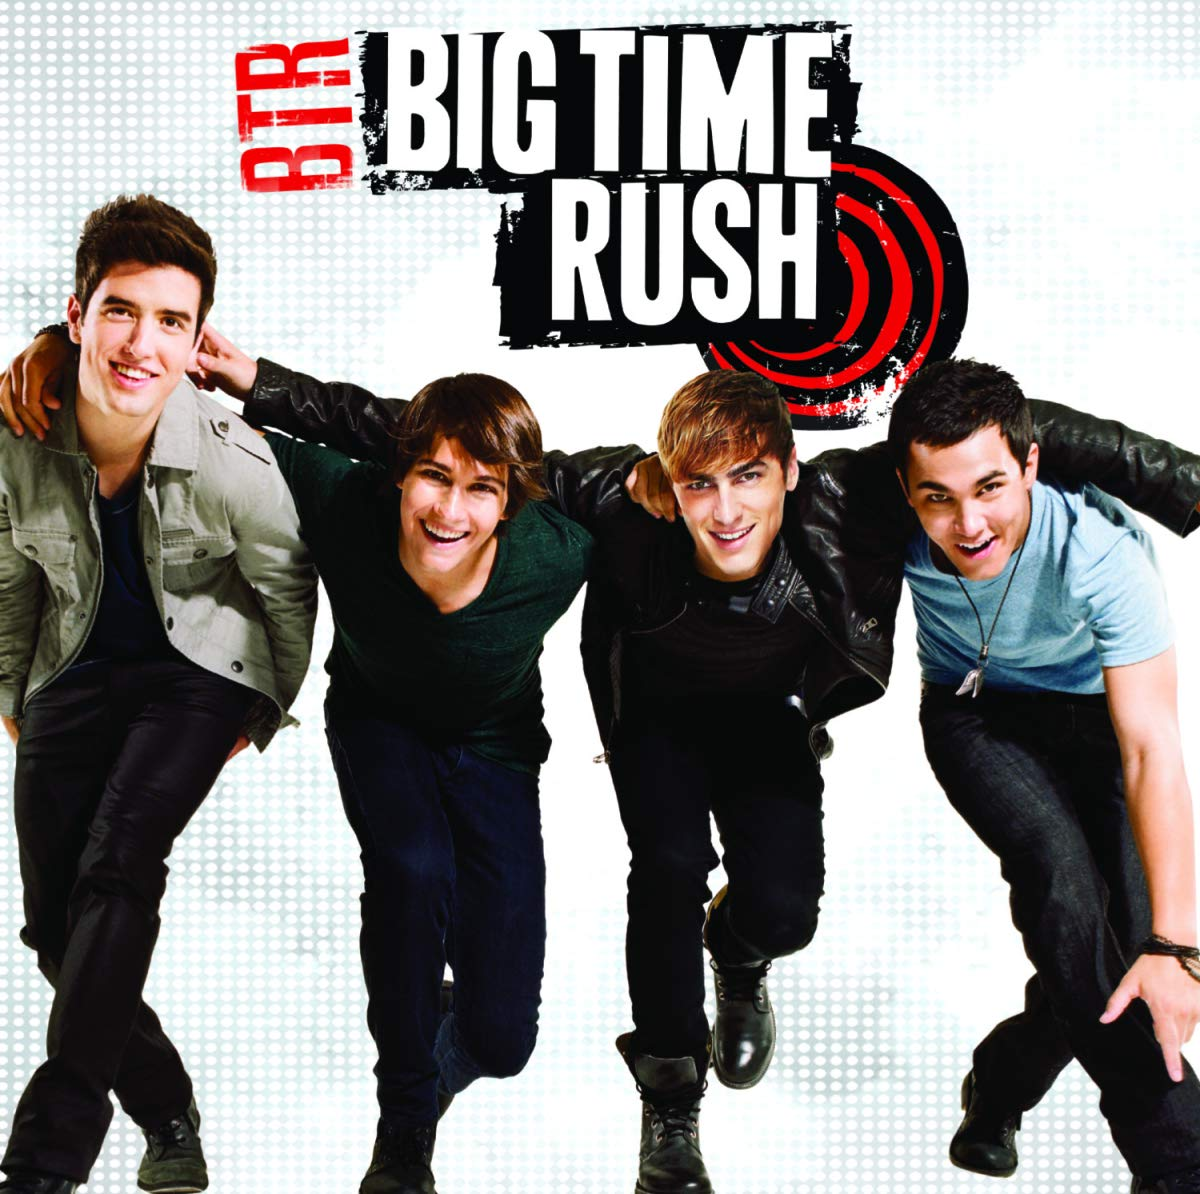 big time rush album free download